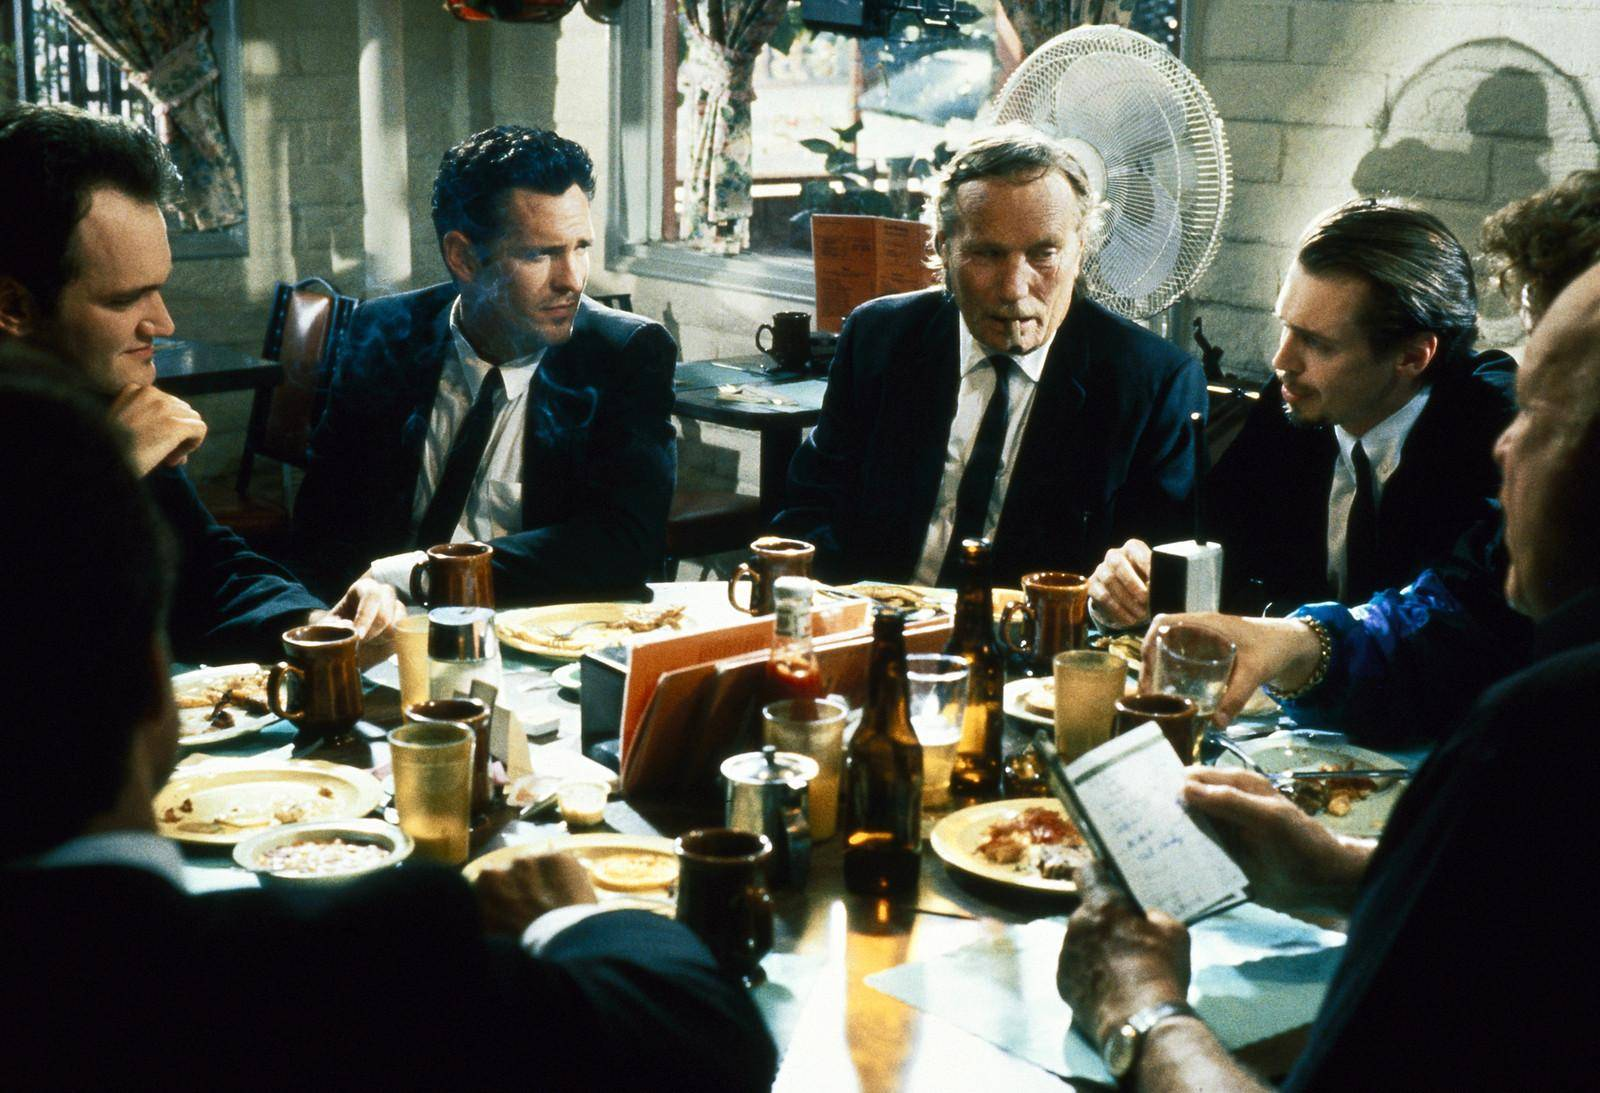 still-of-steve-buscemi,-quentin-tarantino,-michael-madsen-and-edward-bunker-in-de-hänsynslösa-(1992)